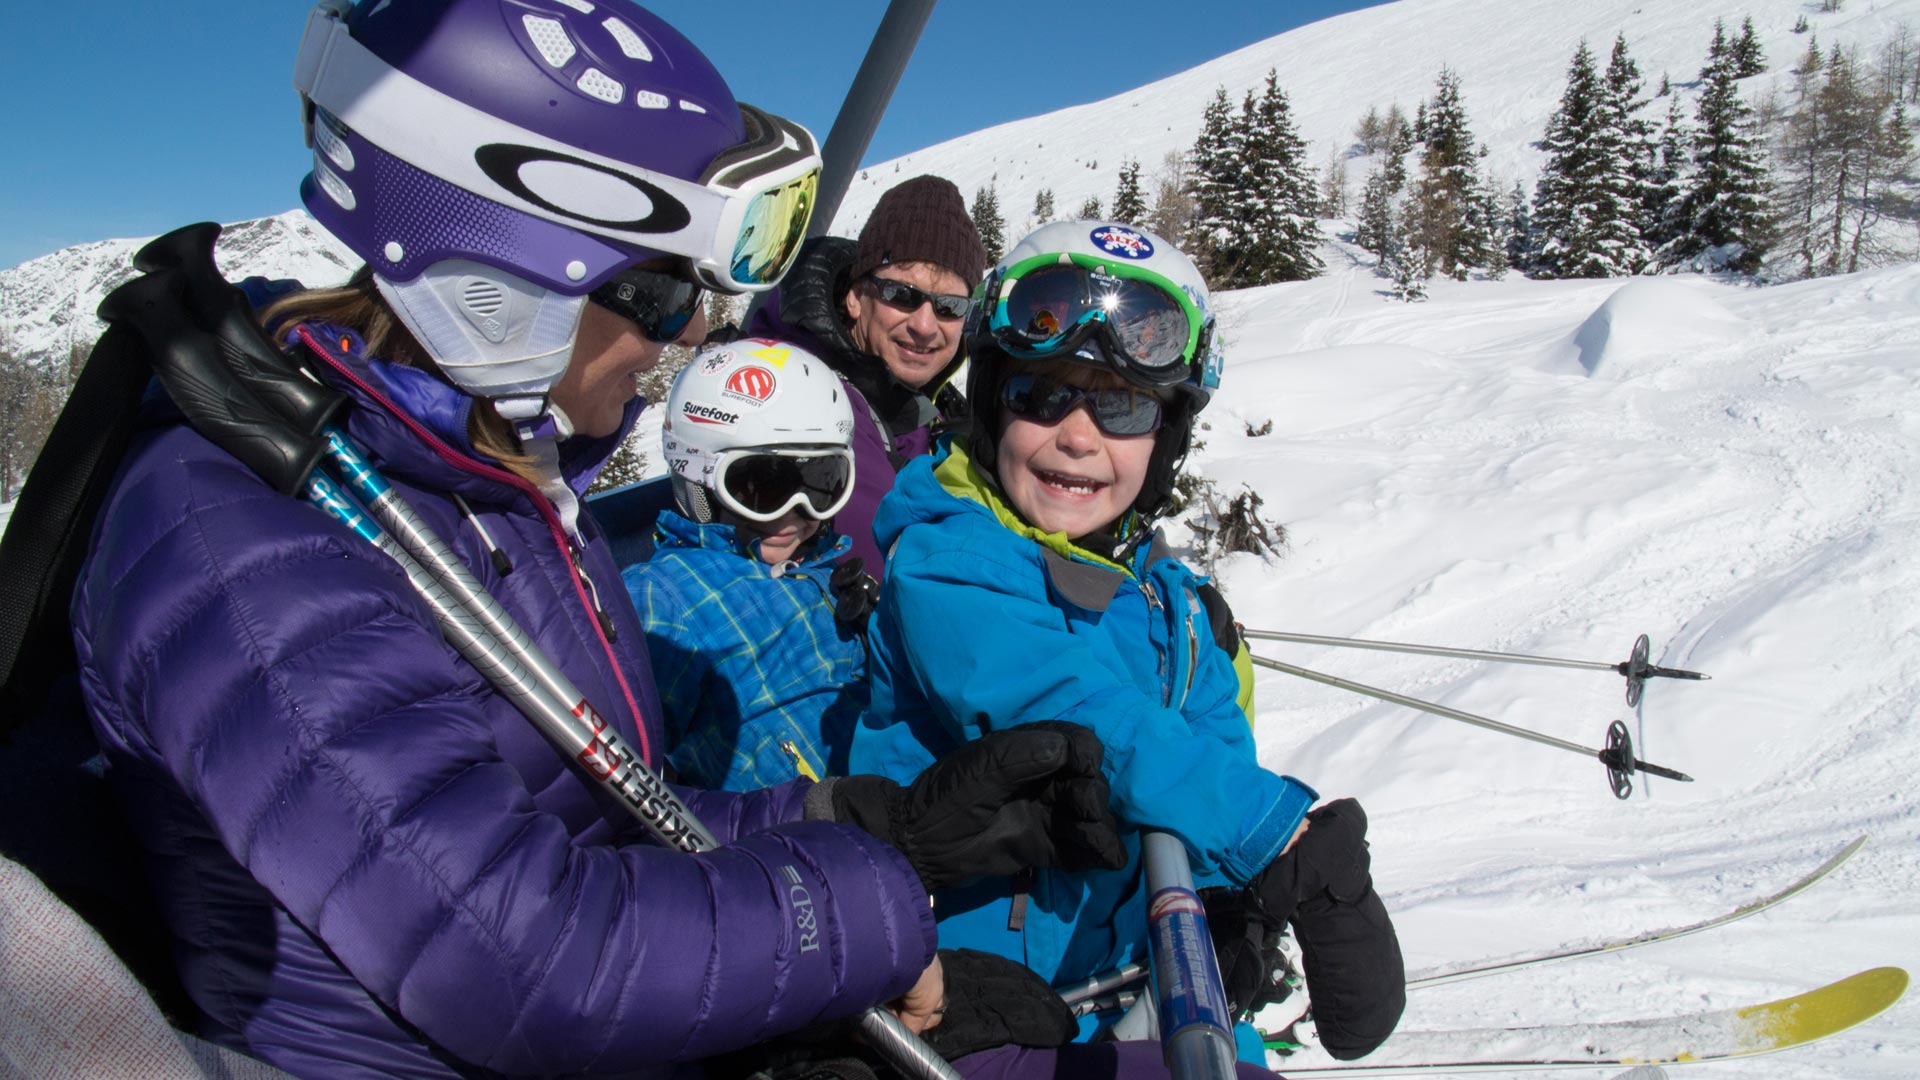 Family Skiing in Sainte Foy Resort